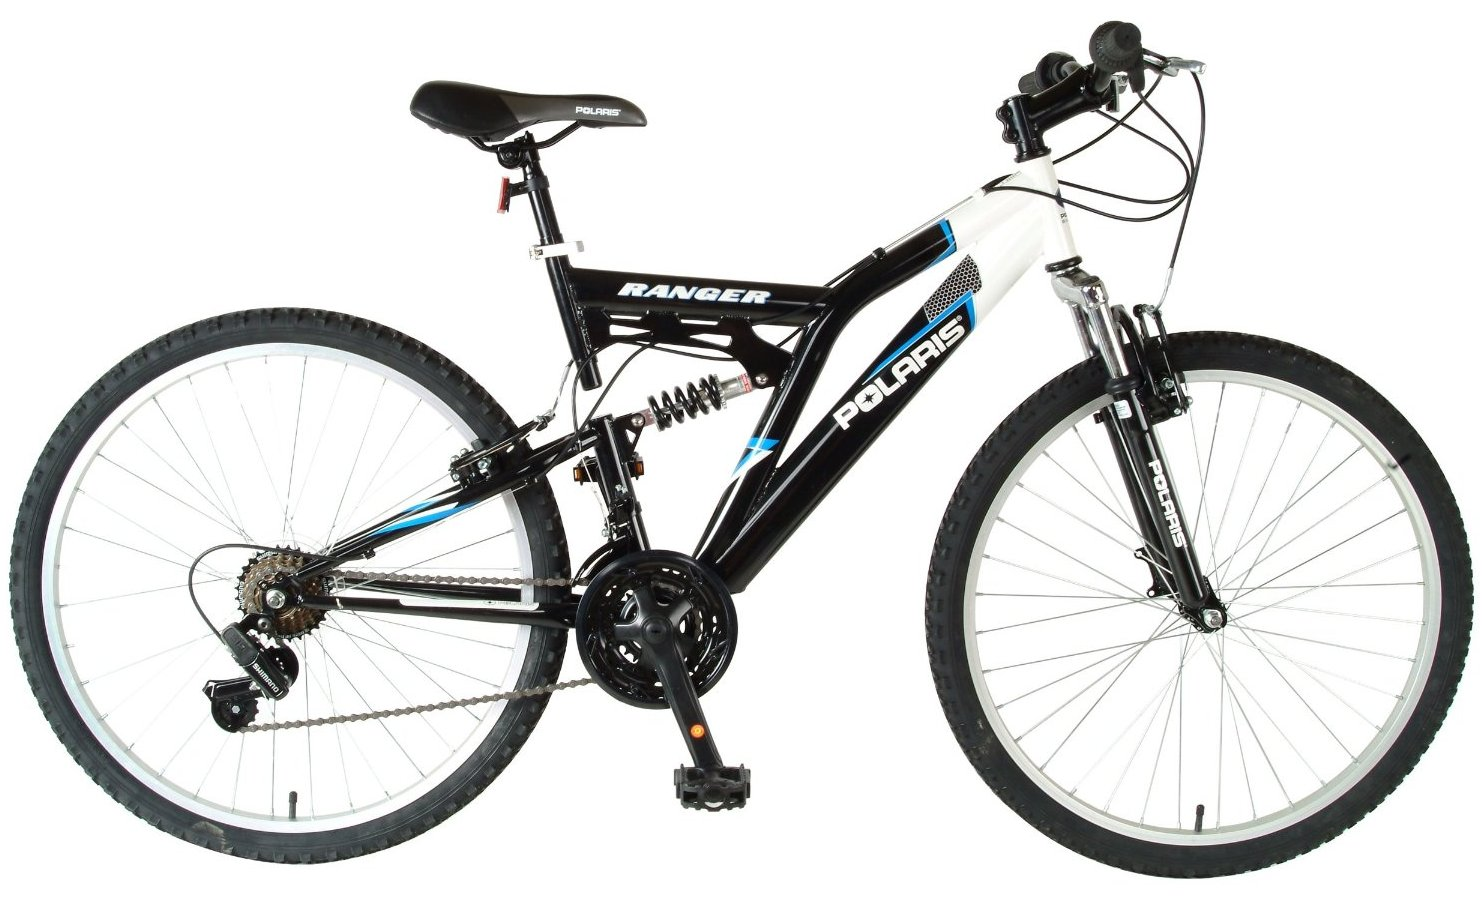 Gmc Denali 21 Speed Boys Aluminum 24 Road Bike